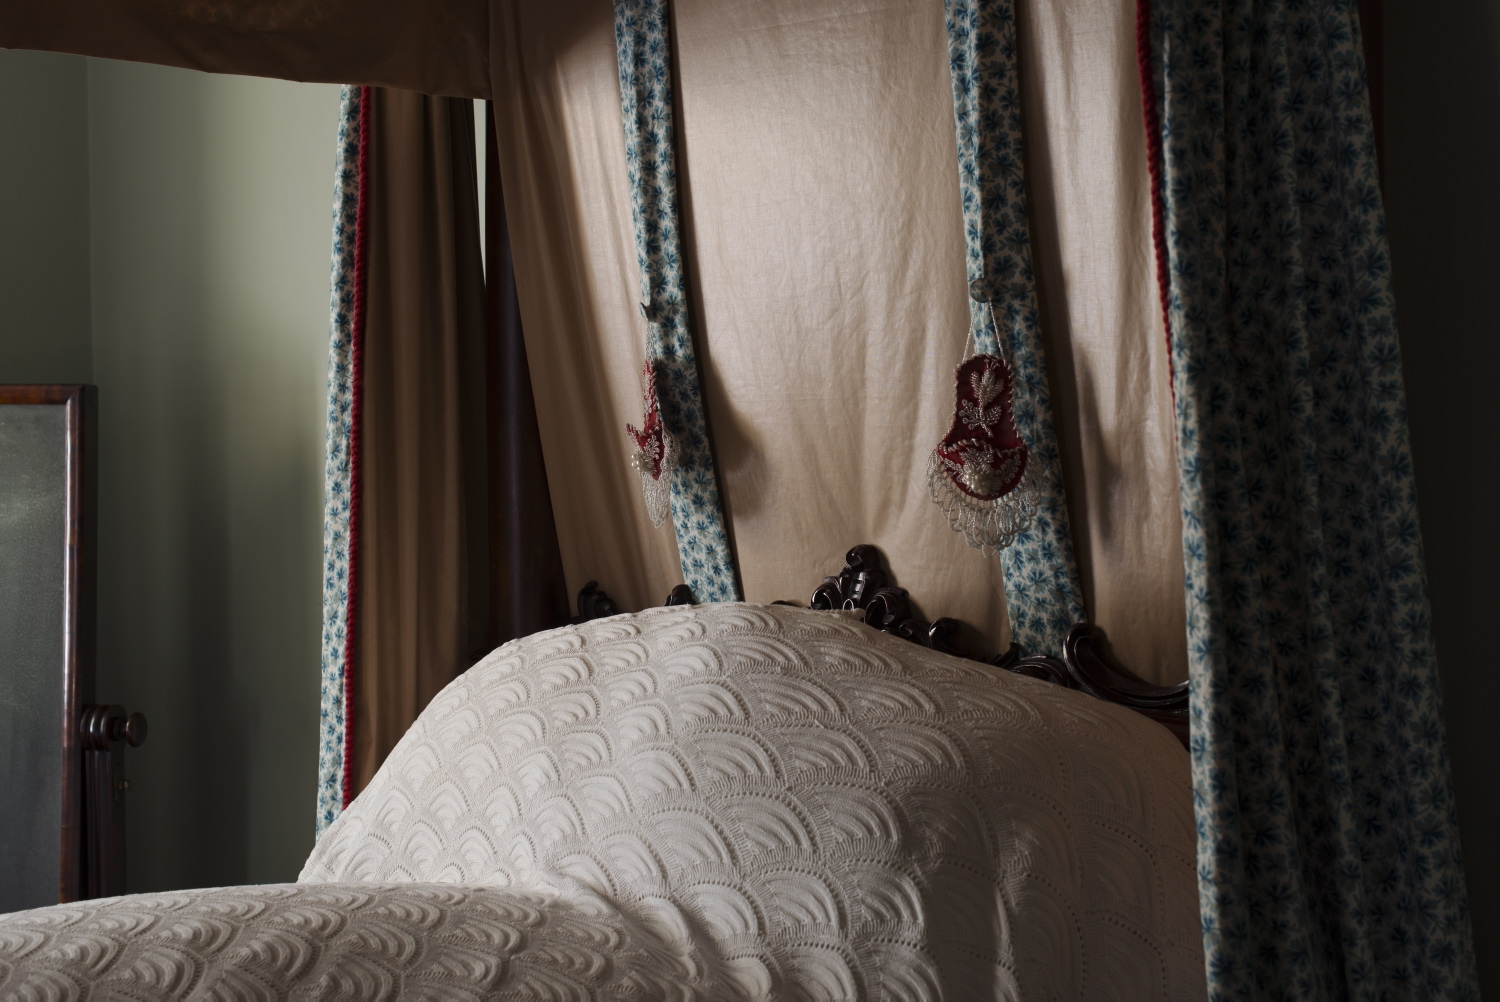 Head of bed showing the watch pocket of red plush fabric and decorated with glass and pearl beads in floral patterns.